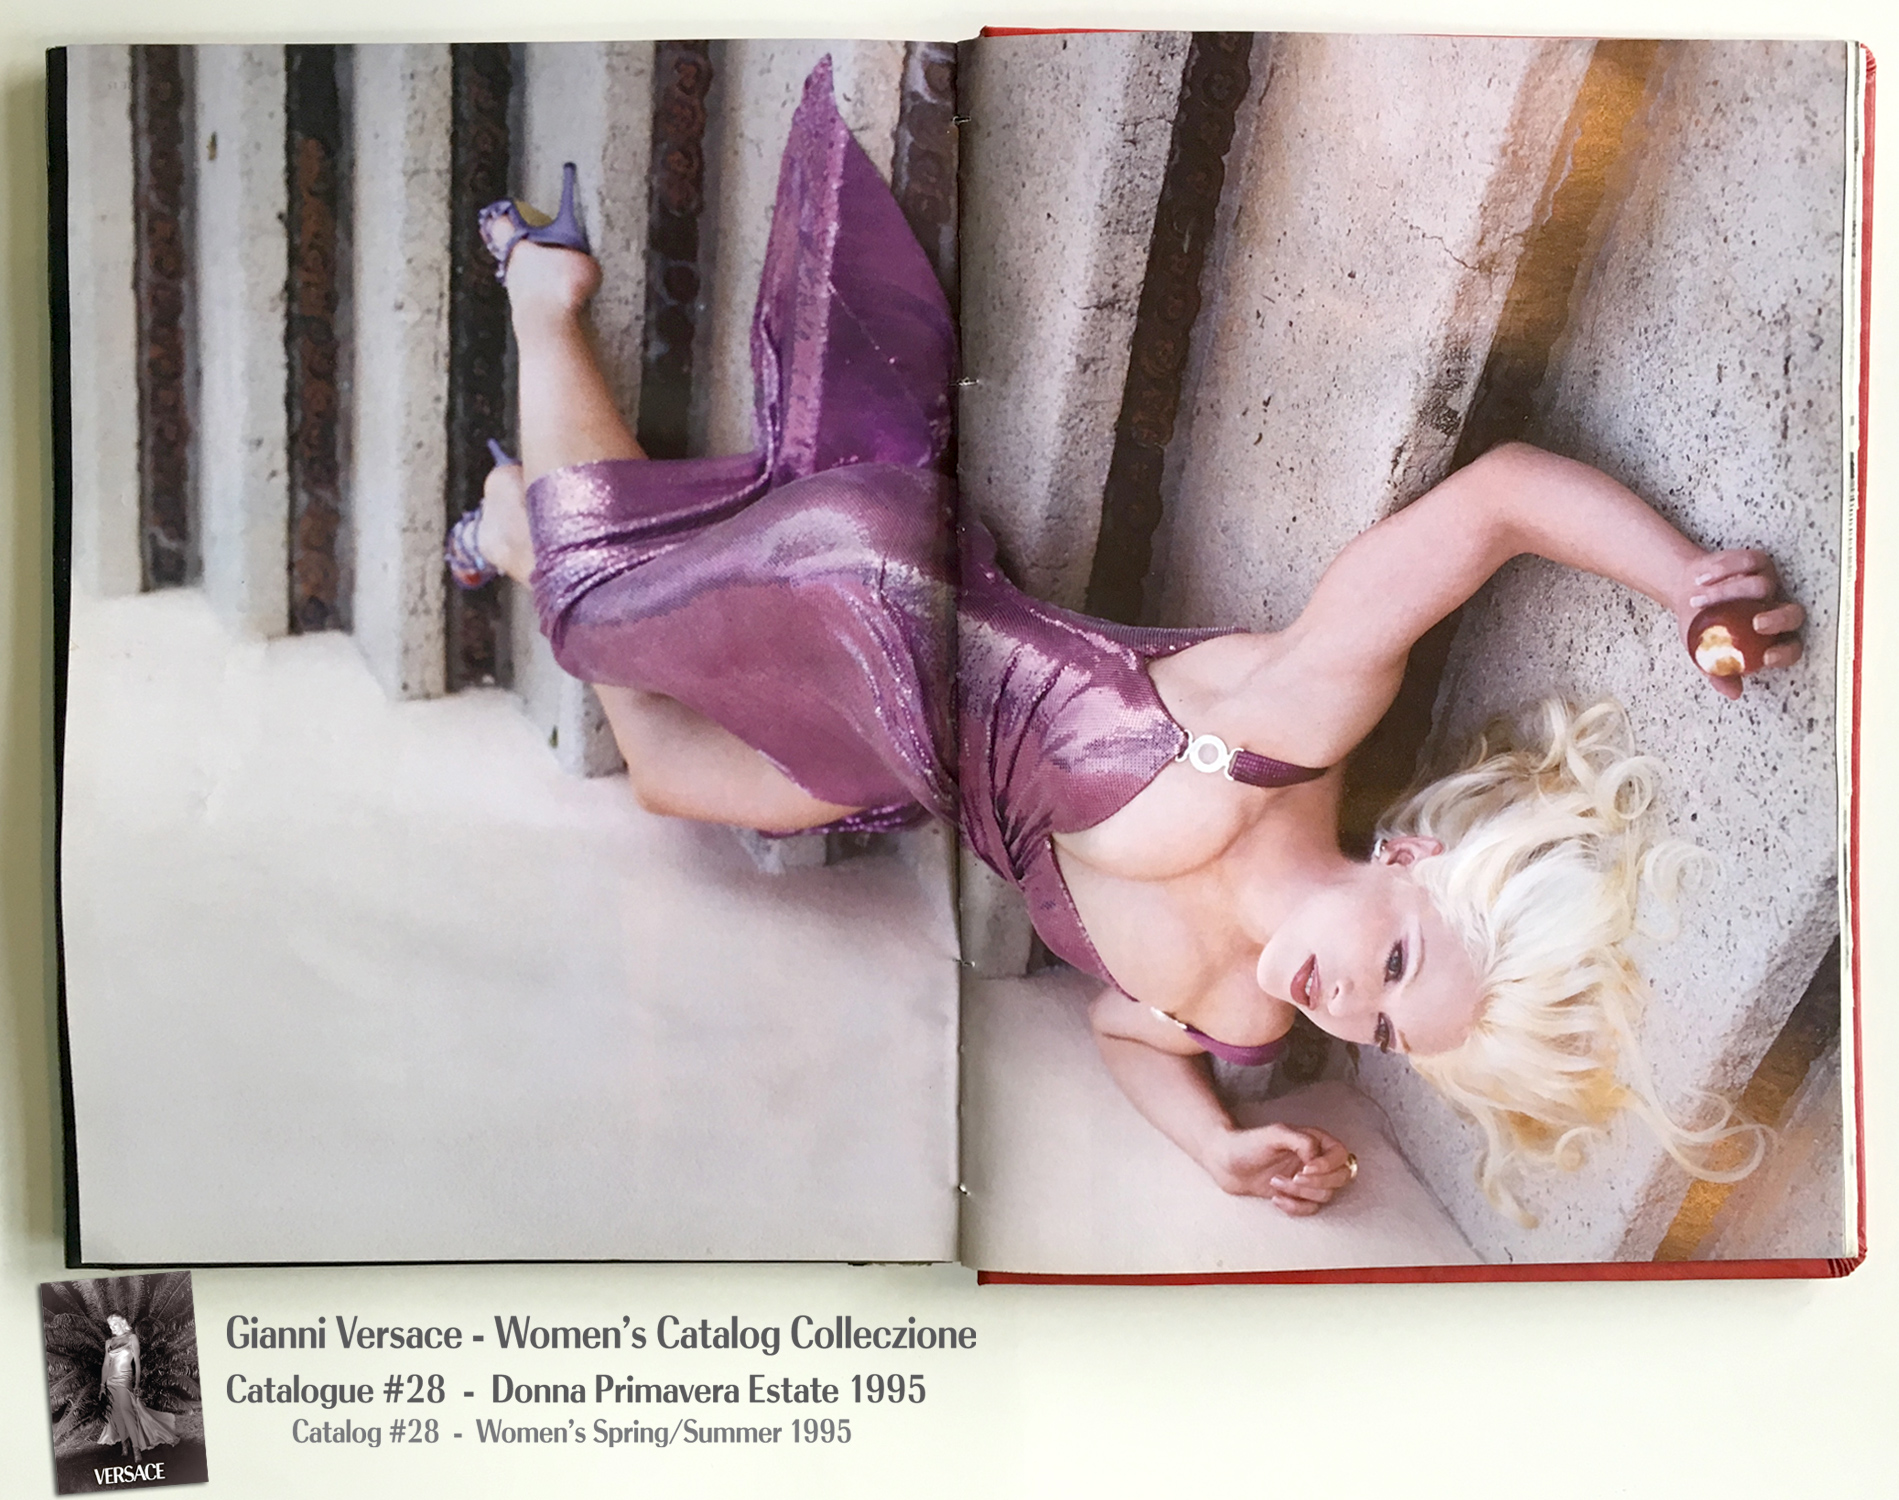 Poison Apple Snow White Purple dress Stairs fallen Steven Meisel Gianni Versace Donna Collezione Primavera Estate Woman's Spring Summer Madonna Catalog Fashion Supermodels #28, 1995